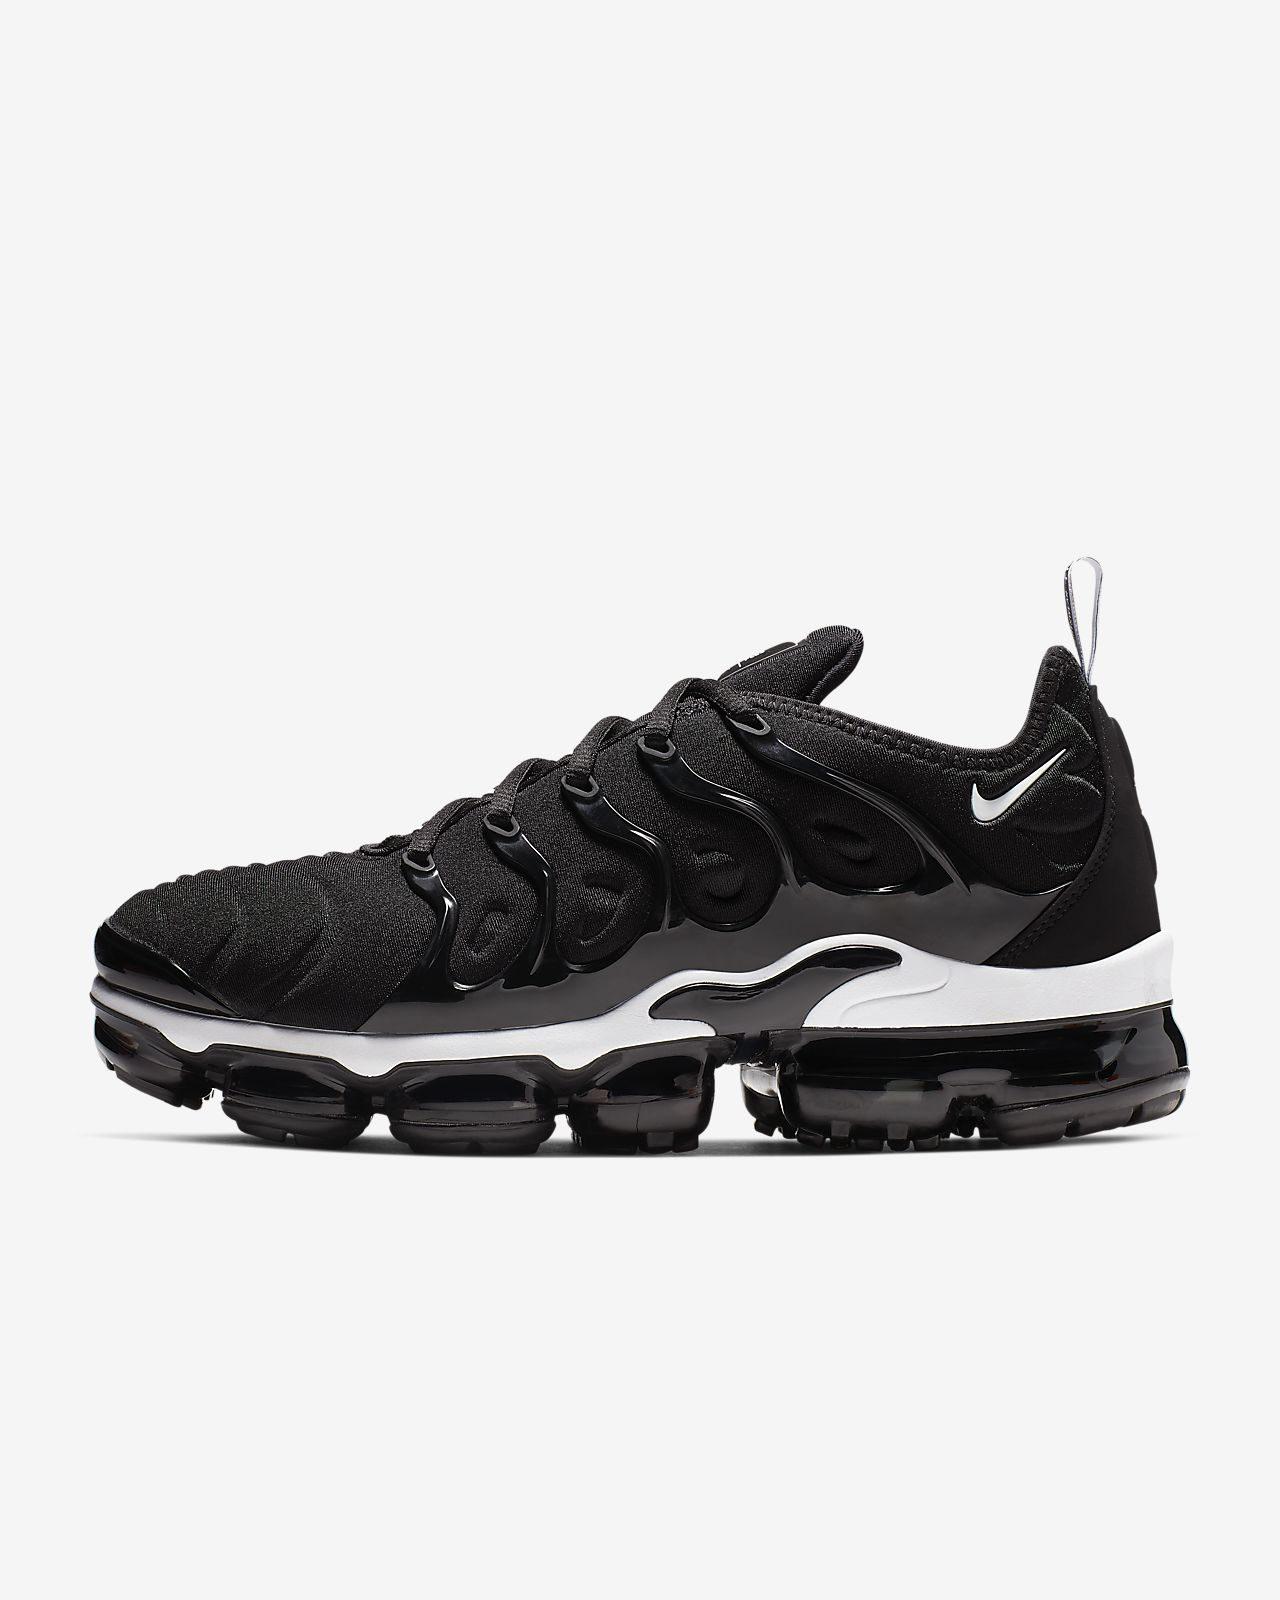 0b4250dd13dee Nike Air VaporMax Plus Men s Shoe. Nike.com GB